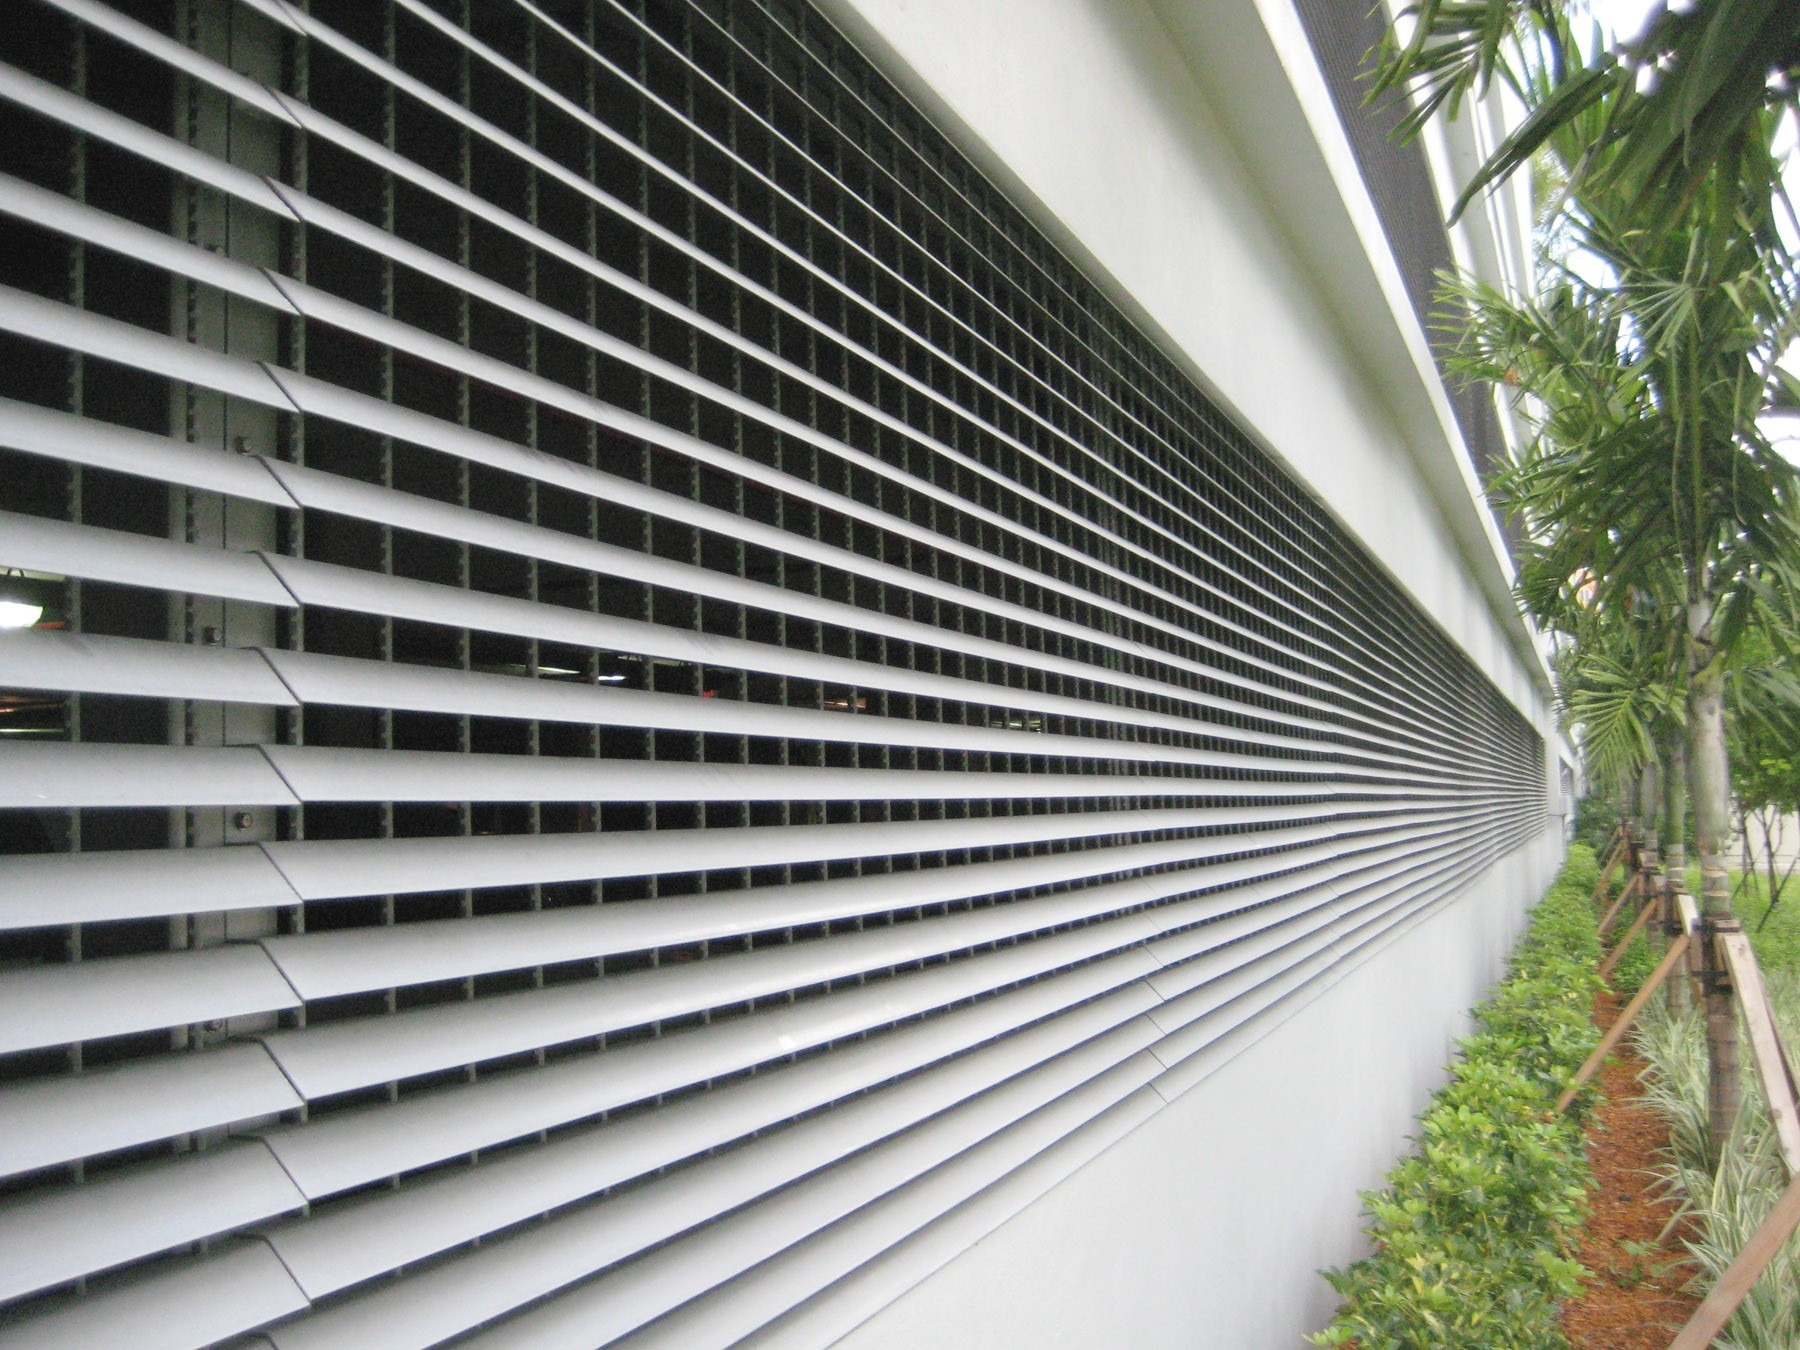 #6F7546 Ohio Gratings Inc. Provides Aluminum Louvres For Artech  Brand New 6391 Security Louvers images with 1800x1350 px on helpvideos.info - Air Conditioners, Air Coolers and more